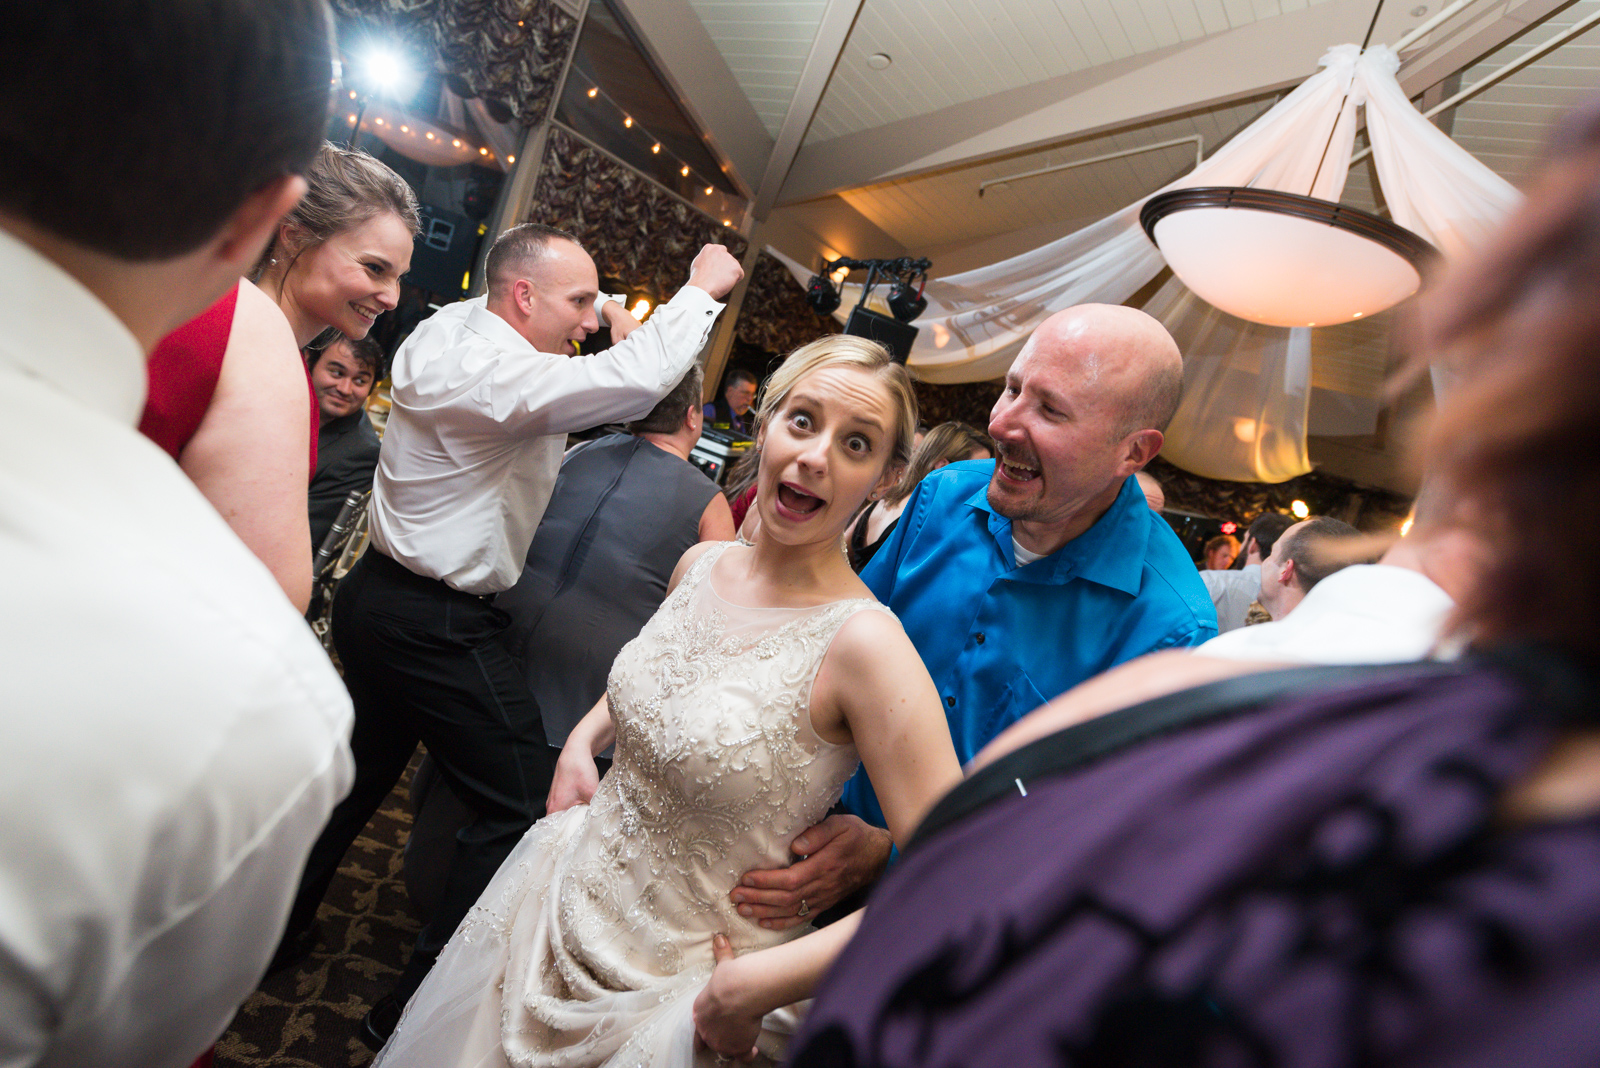 Scranton-clarks-summit-wedding-glen-oaks-contry-club-wedding-photographer-steven-serge-100.jpg